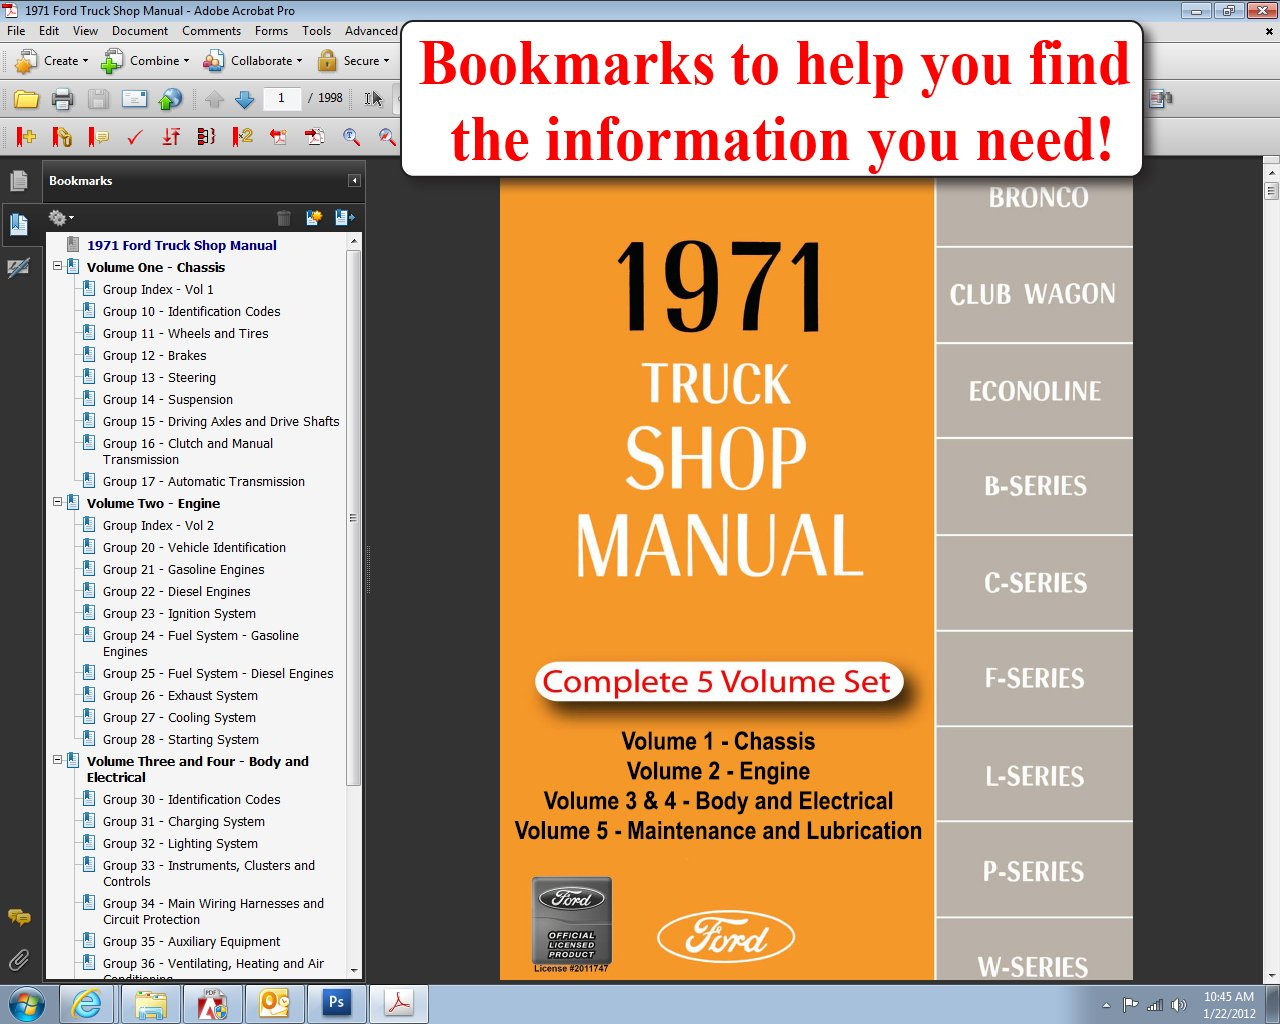 1971 ford truck shop manual ford motor company david e leblanc 1971 ford truck shop manual ford motor company david e leblanc 9781603710794 amazon books fandeluxe Choice Image